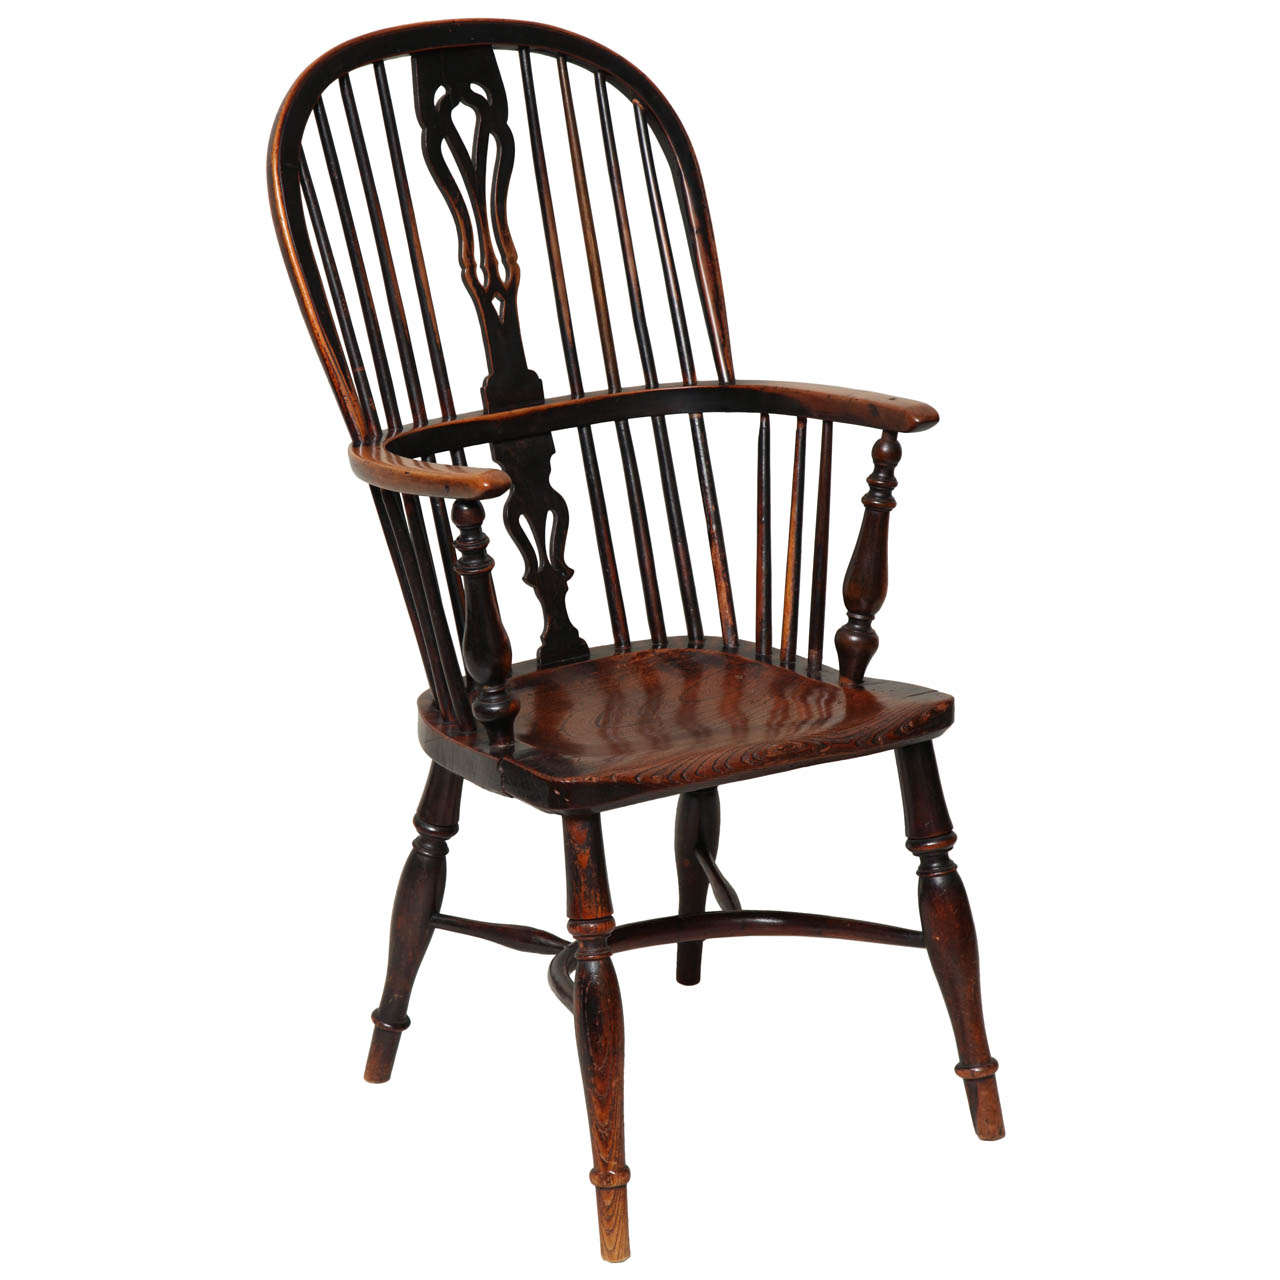 Nice English Yew Wood Hoop Back Windsor Armchair 1